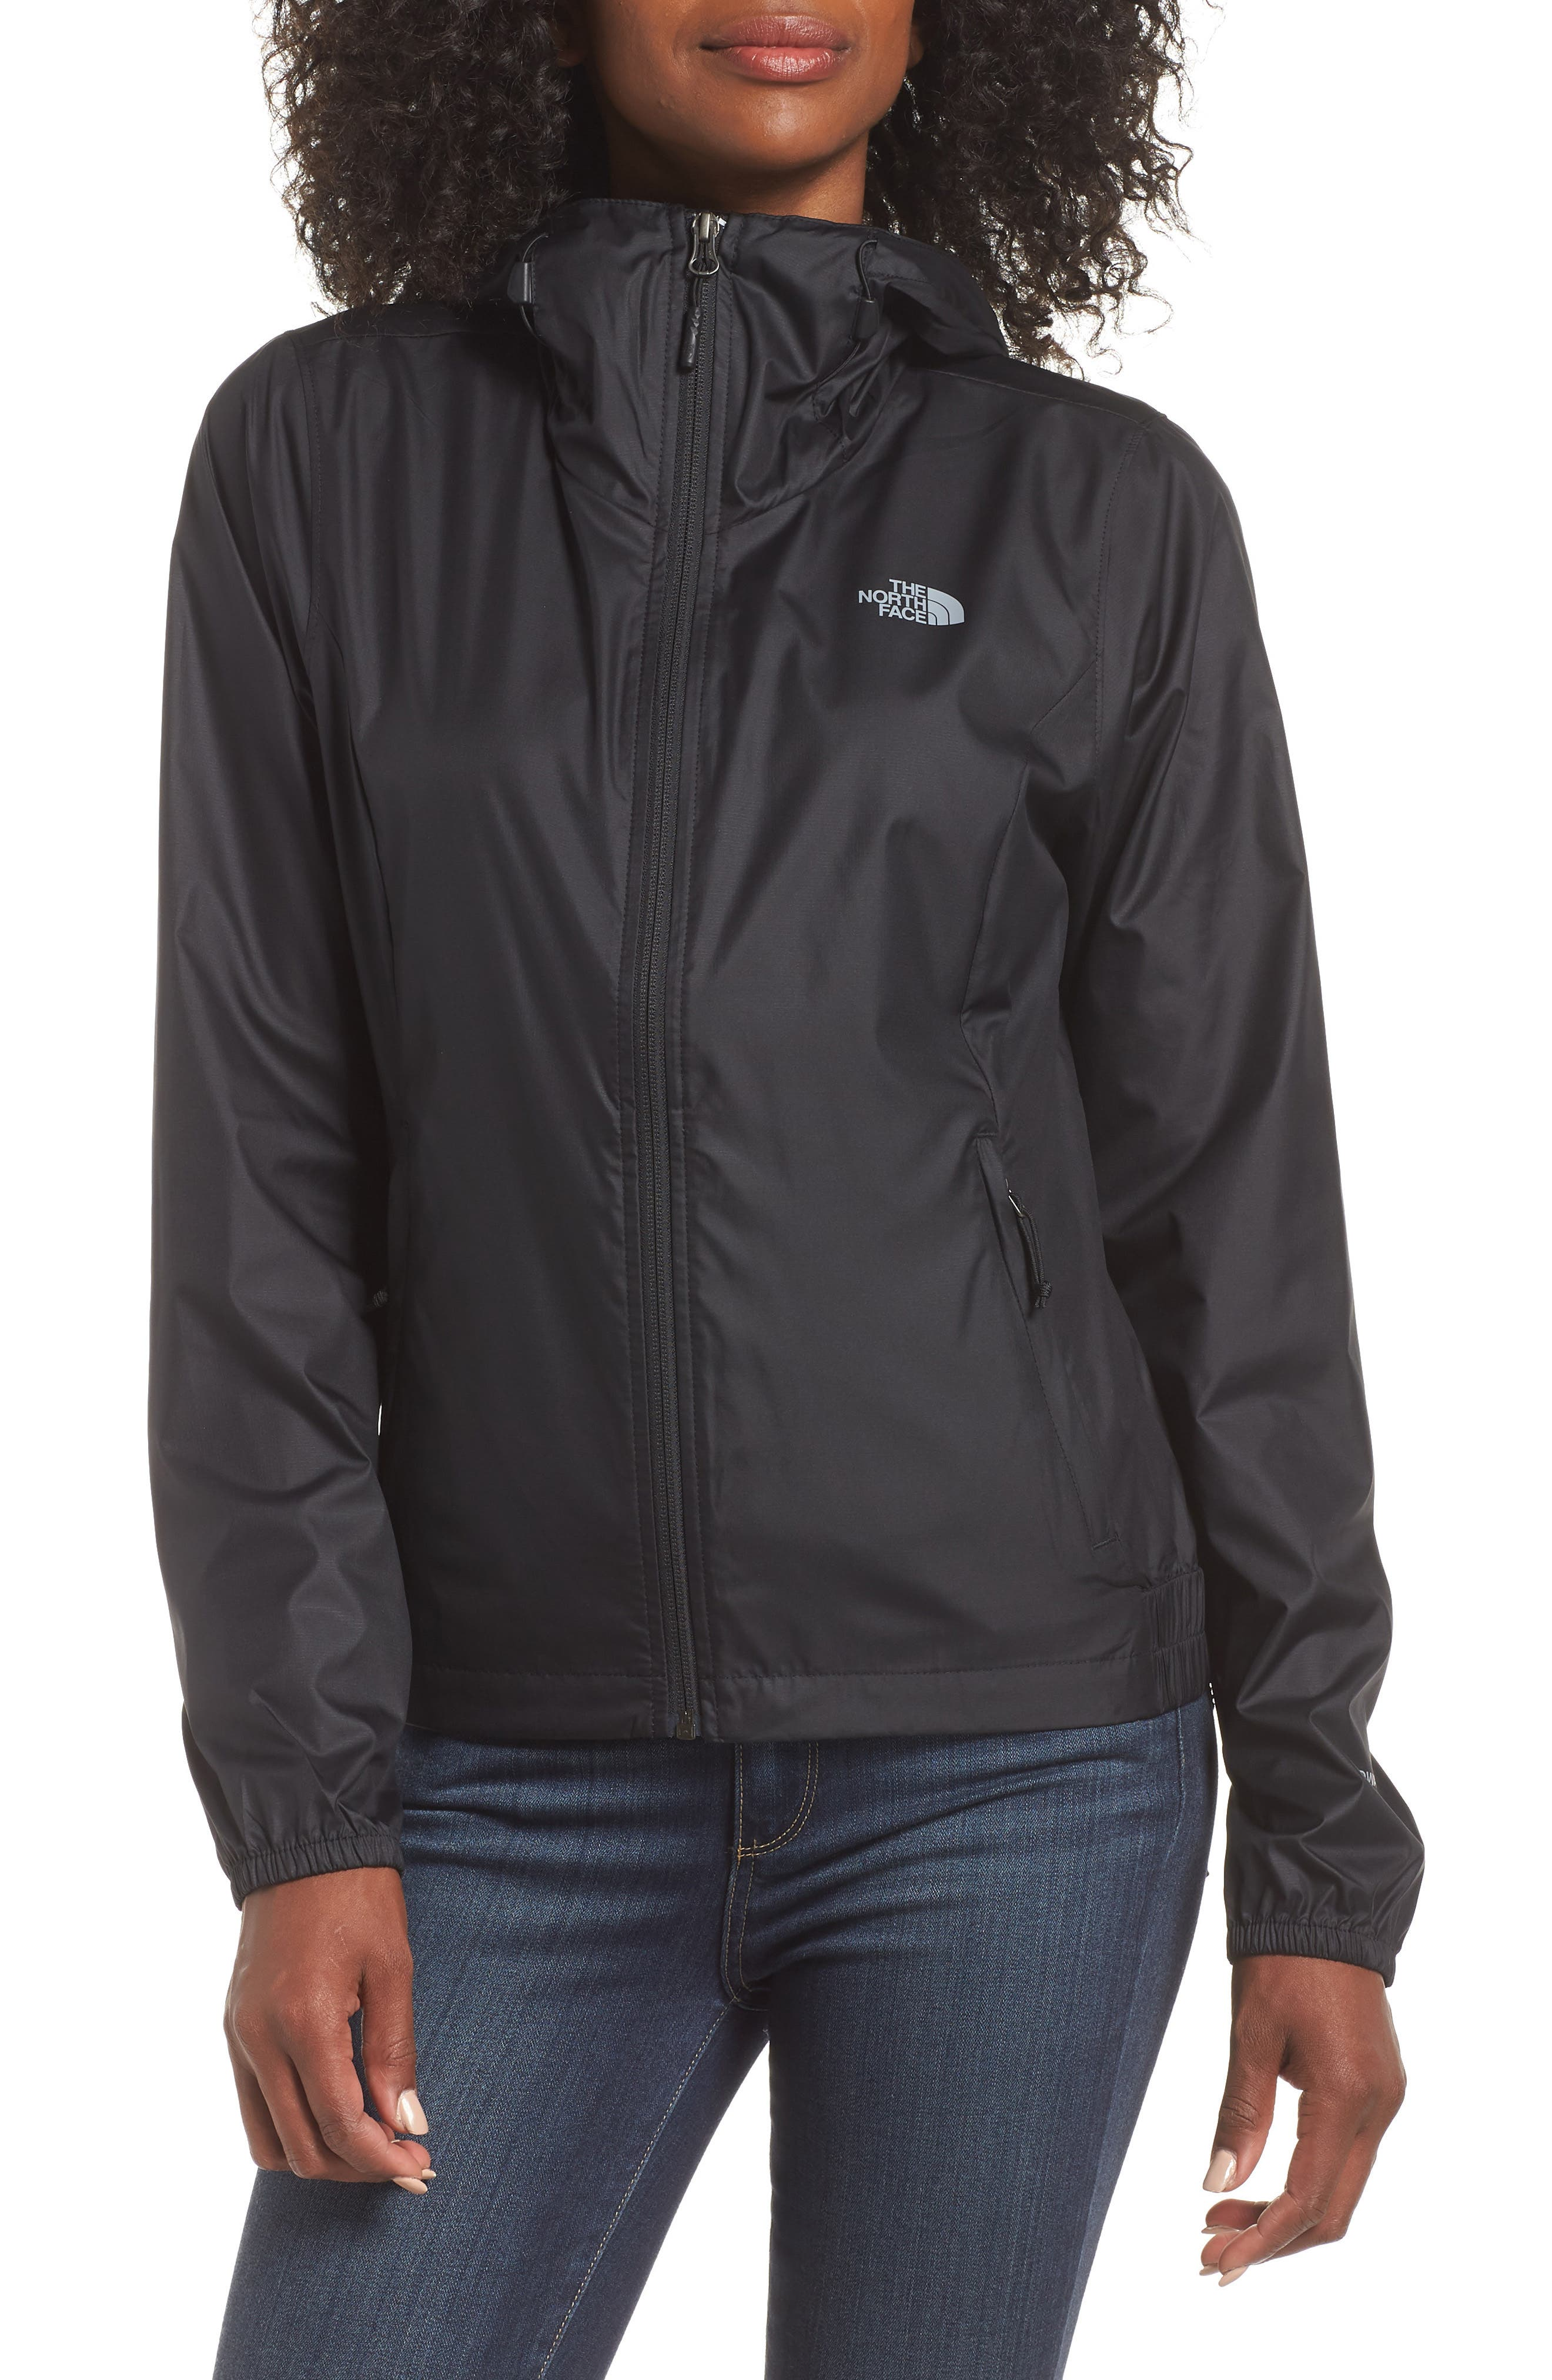 THE NORTH FACE, Cyclone 3.0 WindWall<sup>®</sup> Jacket, Alternate thumbnail 5, color, 001